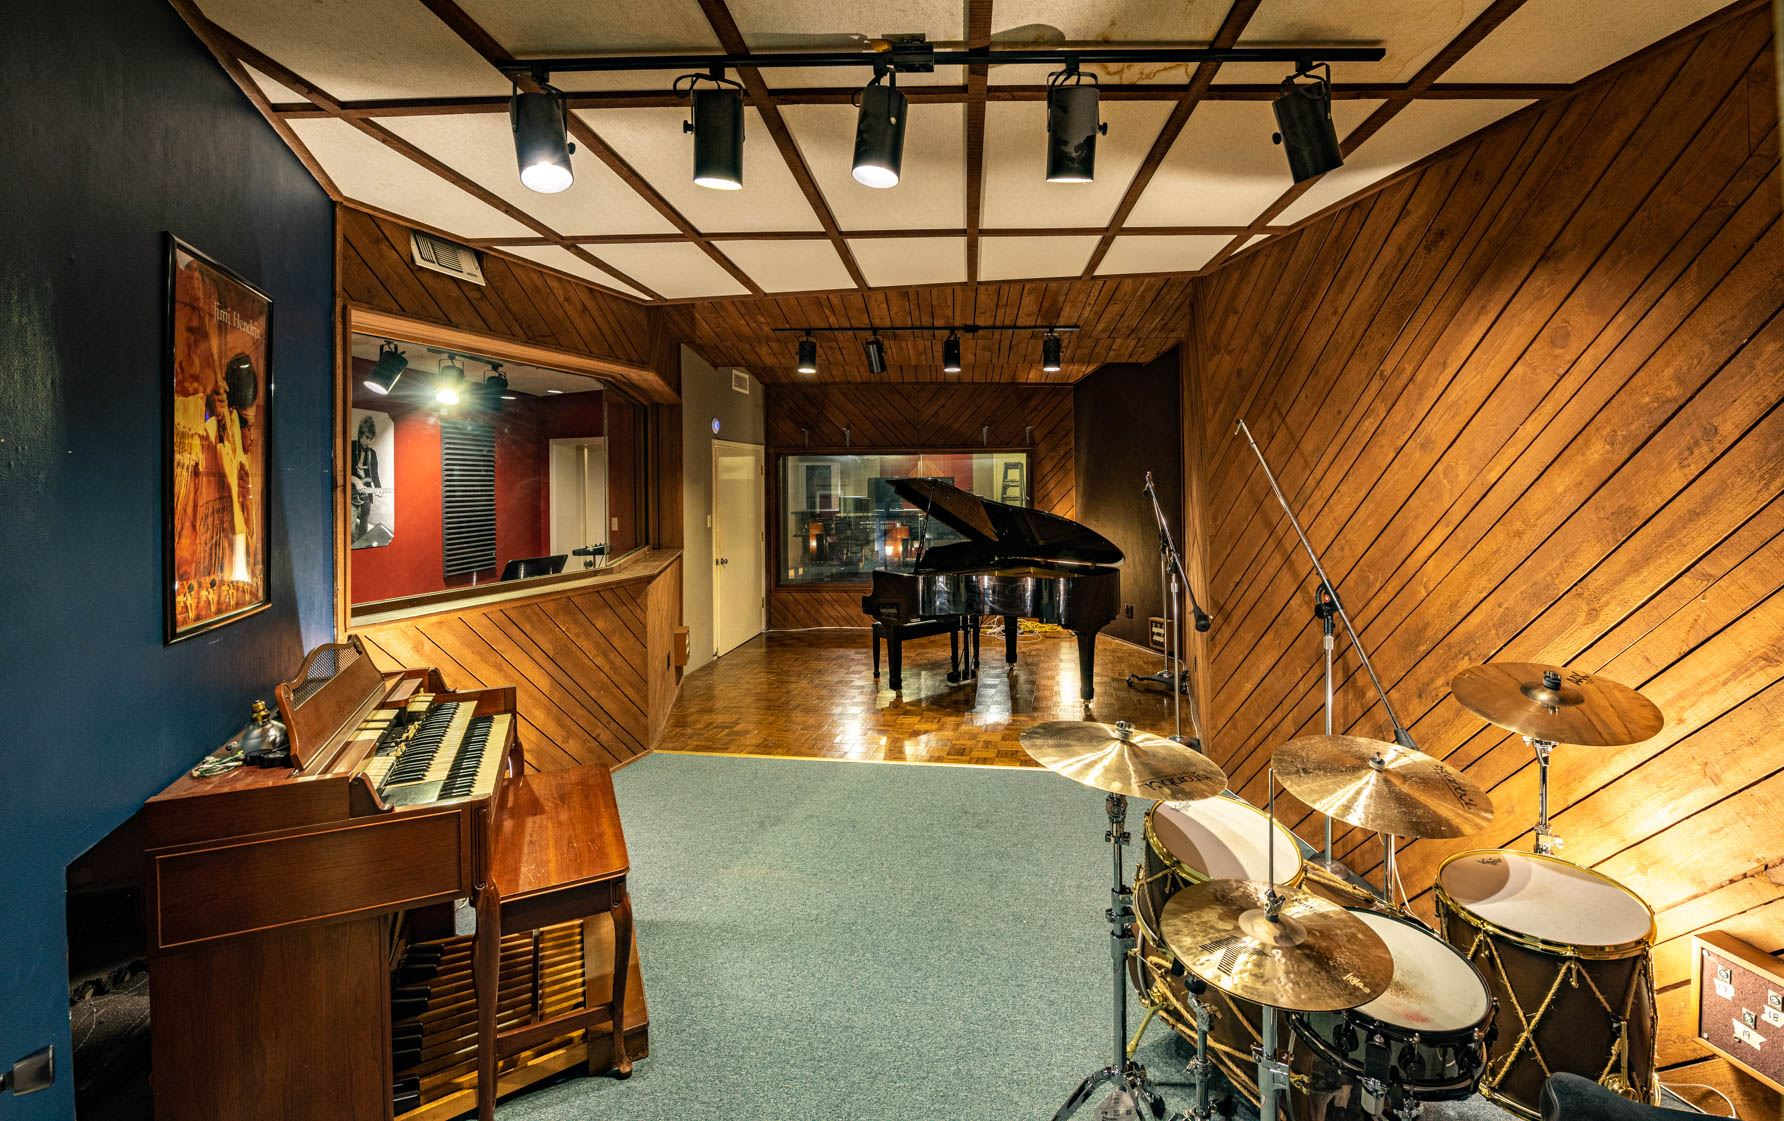 Split Window Studios - Recording Studio - 400 W Main Street, Denison, TX